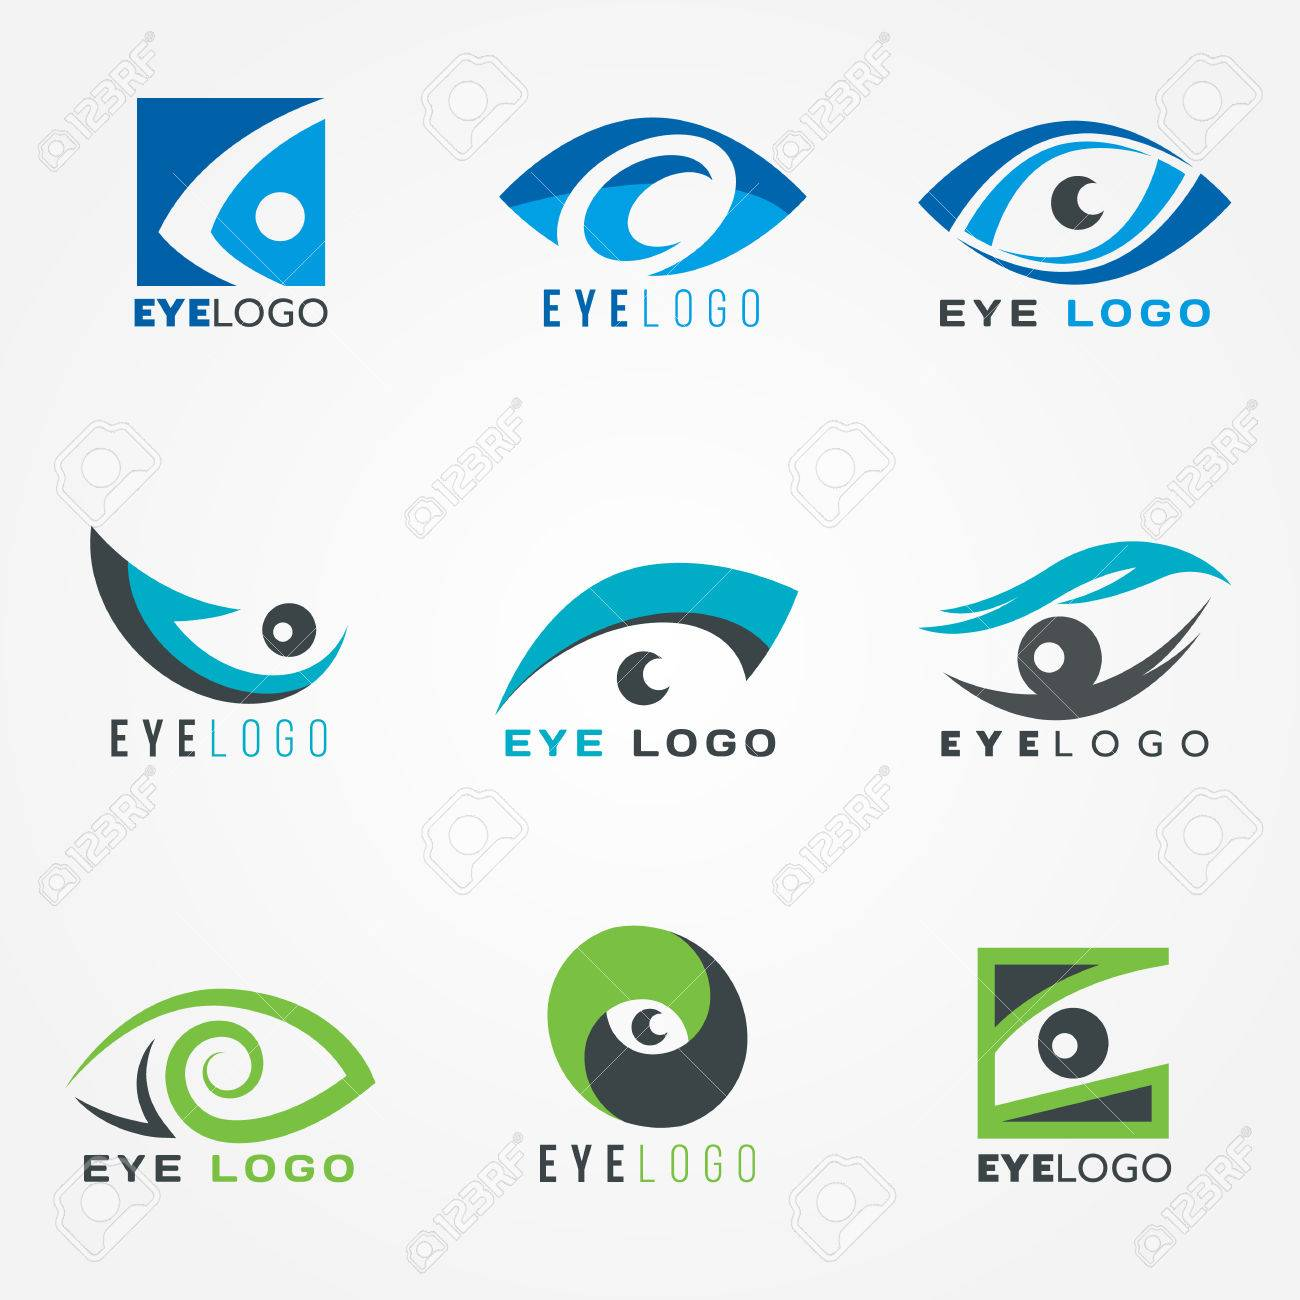 eye logo sign vector set graphic design royalty free cliparts